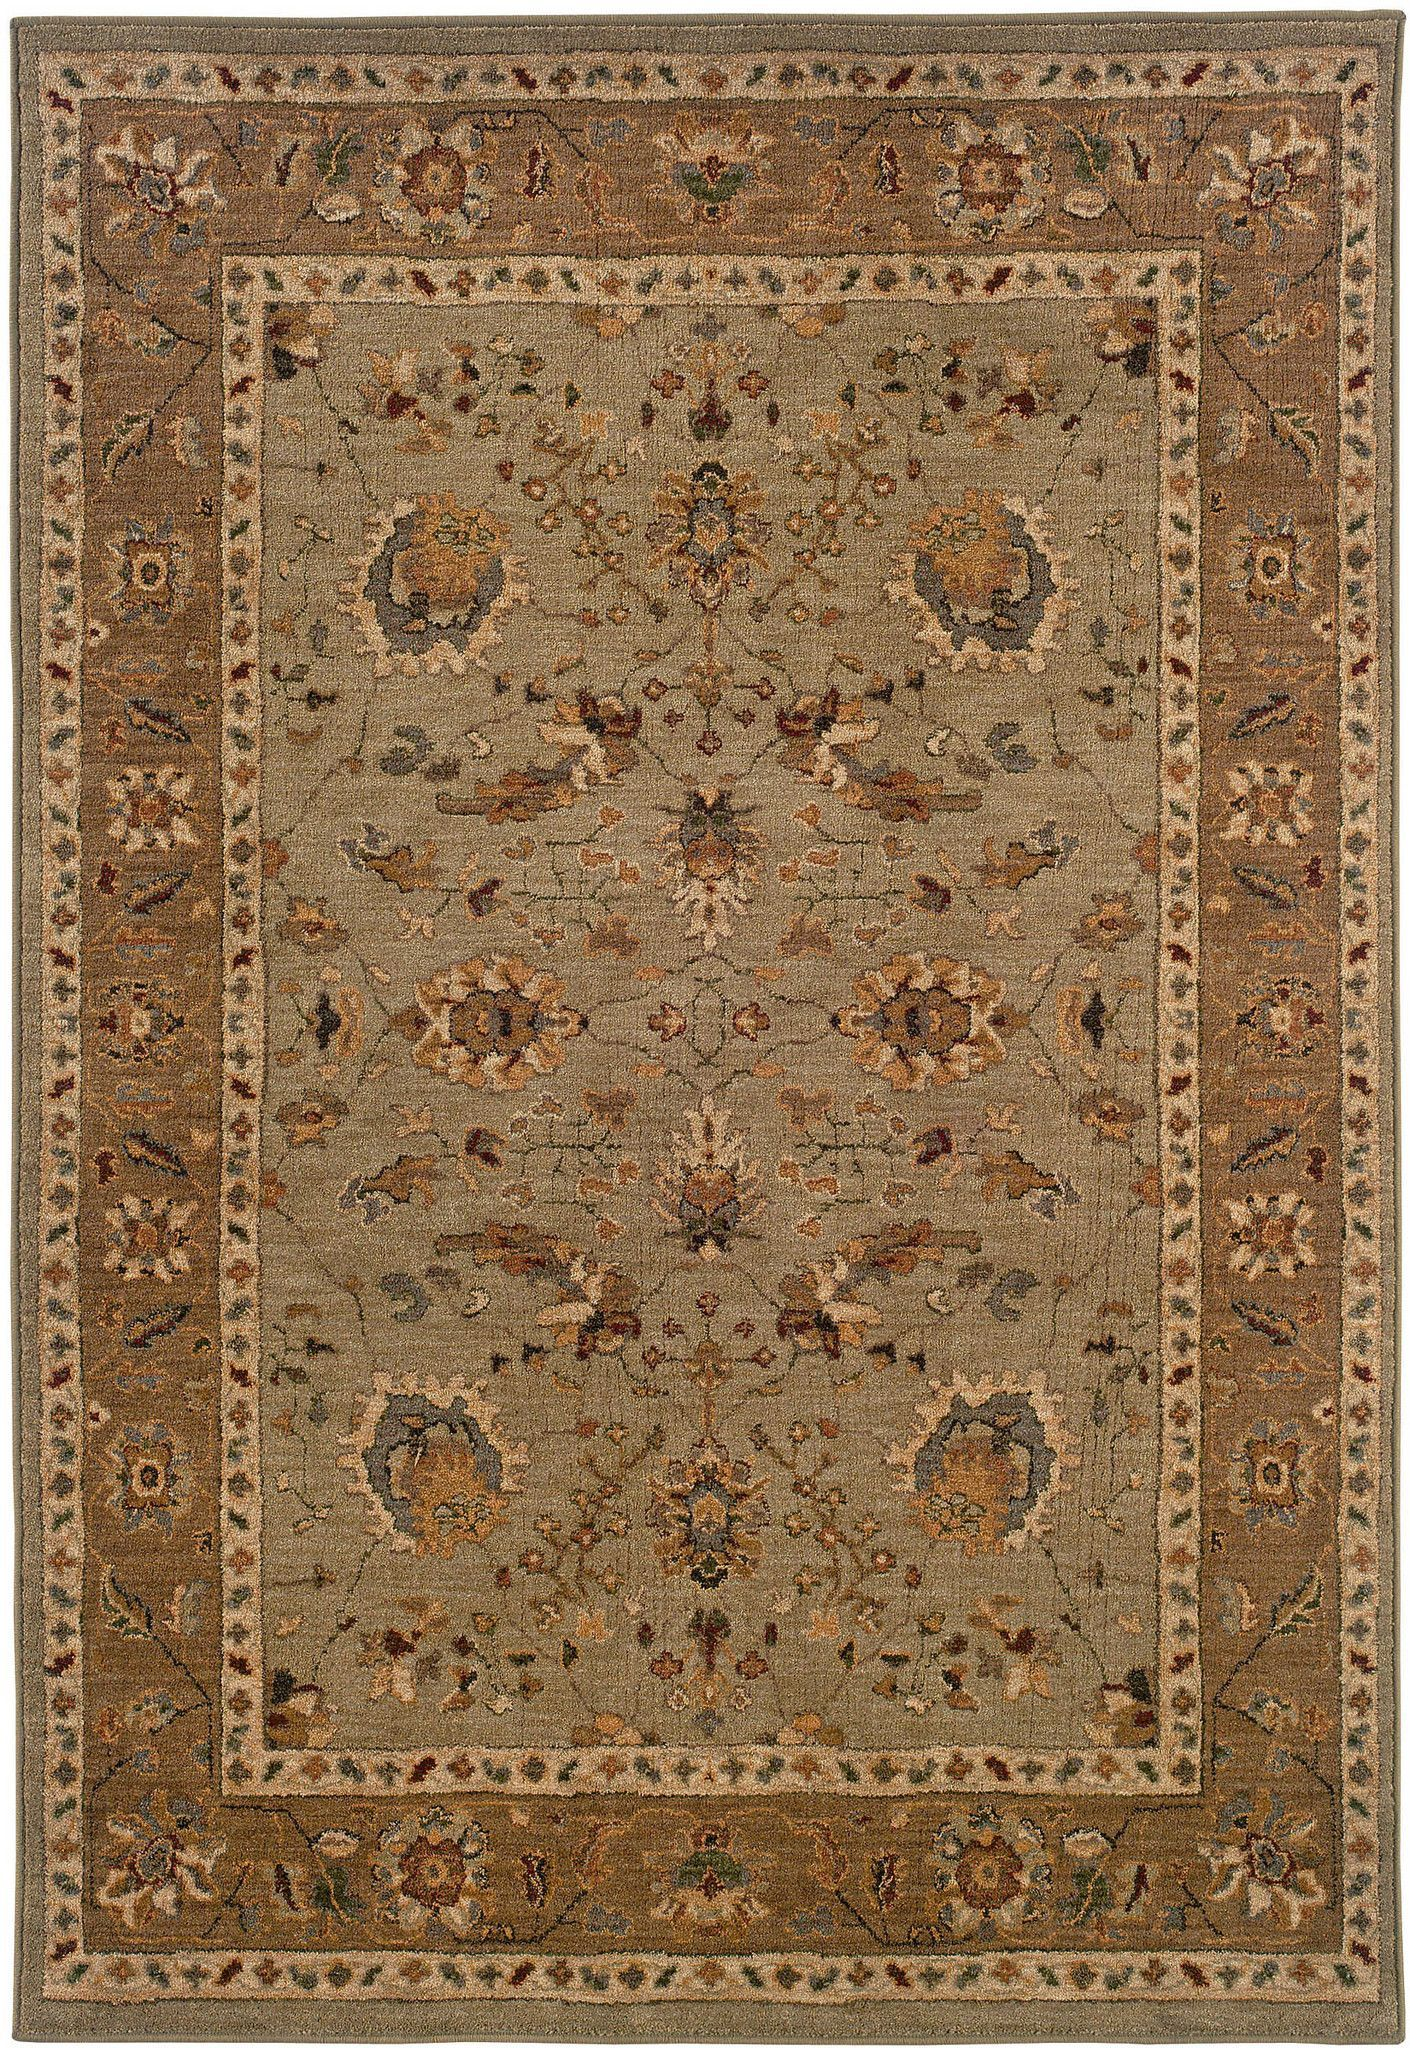 Oriental Weavers Infinity 1104 Products Area Rugs For